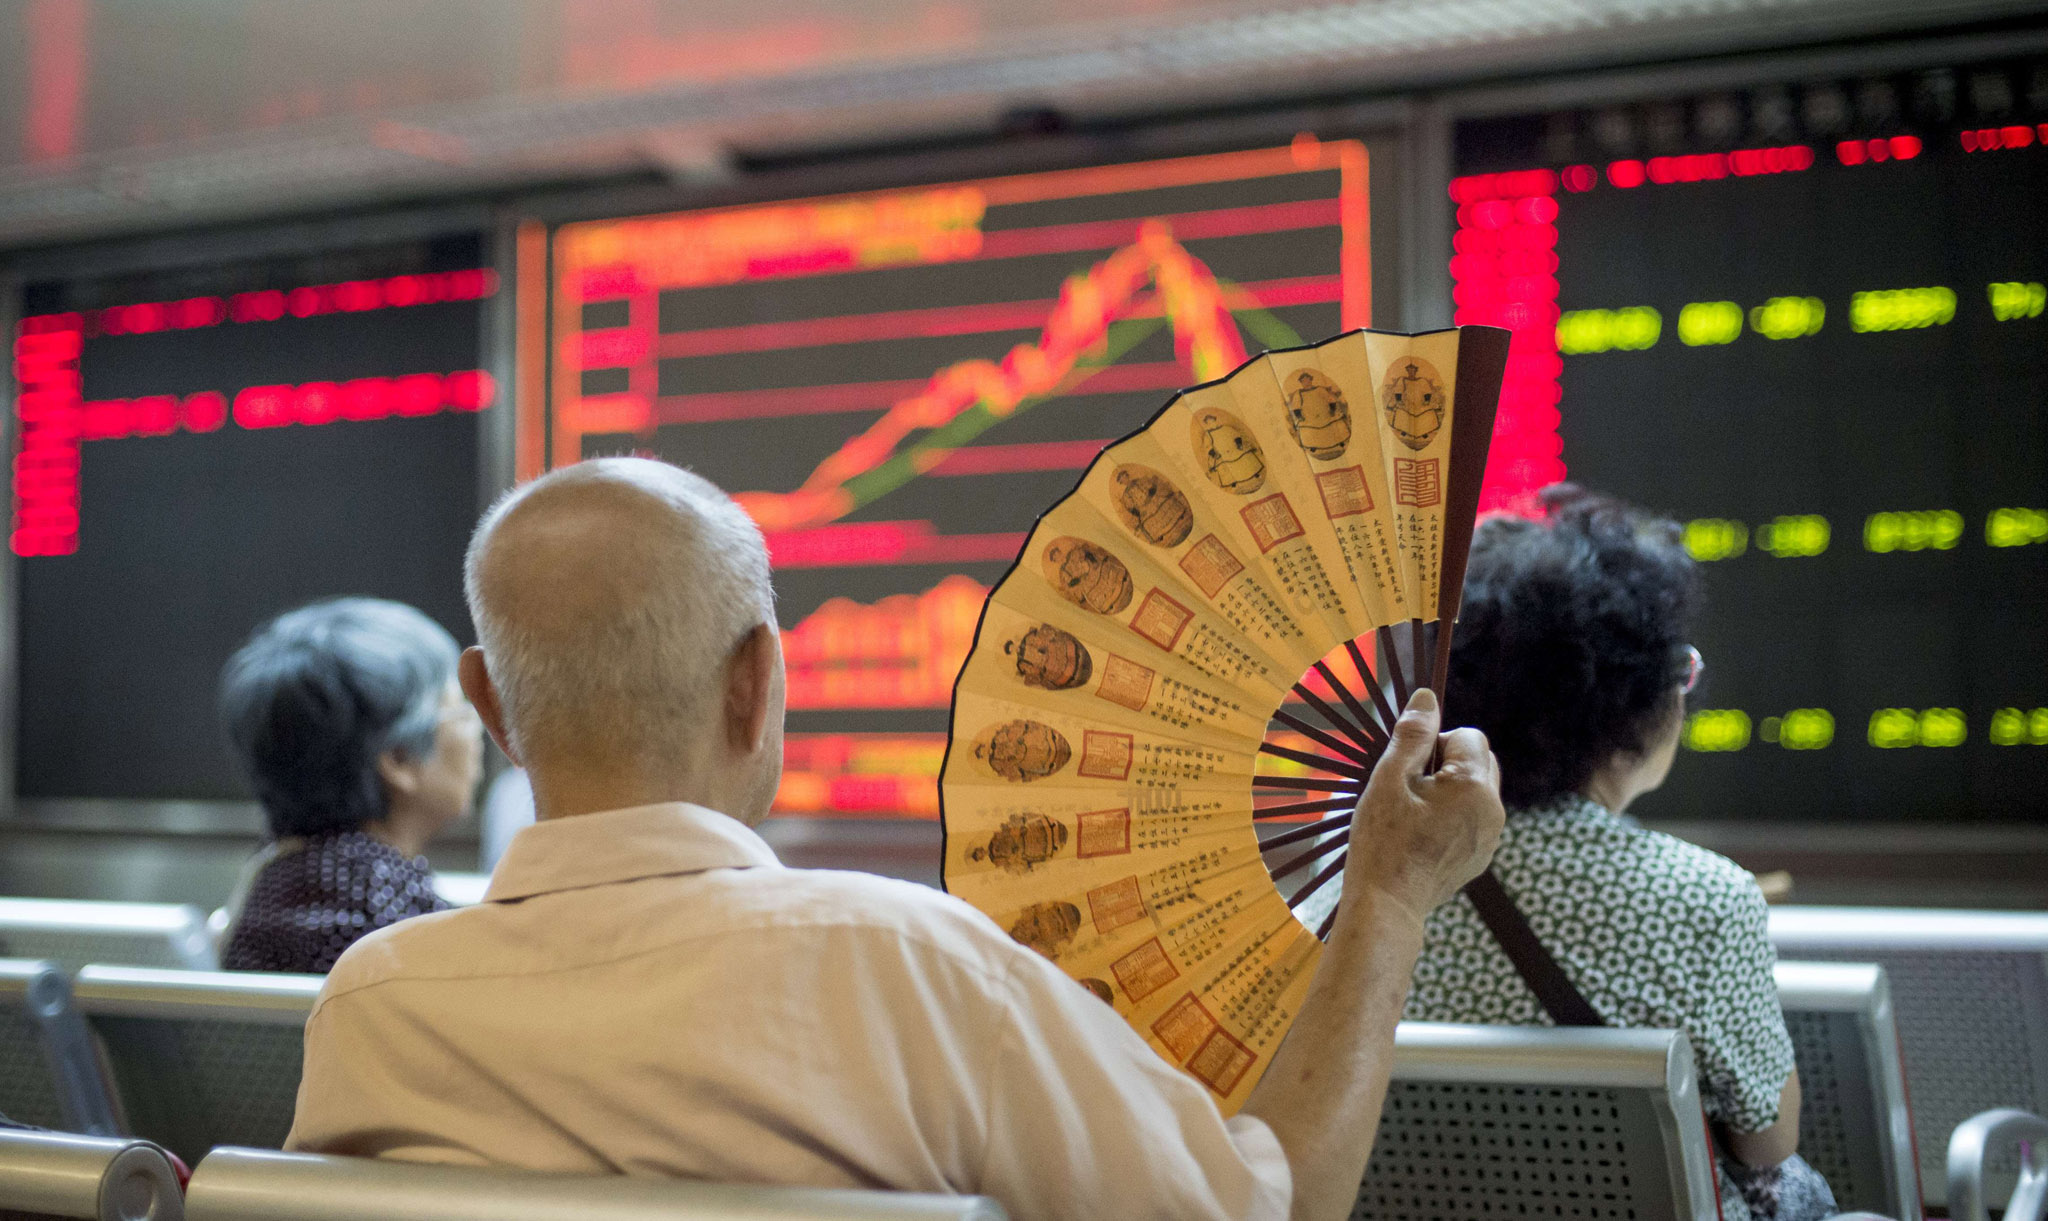 Investors look at screens showing stock market movements at a securities company in Beijing. Chinese shares sank again a day after Shanghai's steepest one-day slide in eight years, defying renewed government vows of support that analysts warned were not enough to soothe nervous investors.